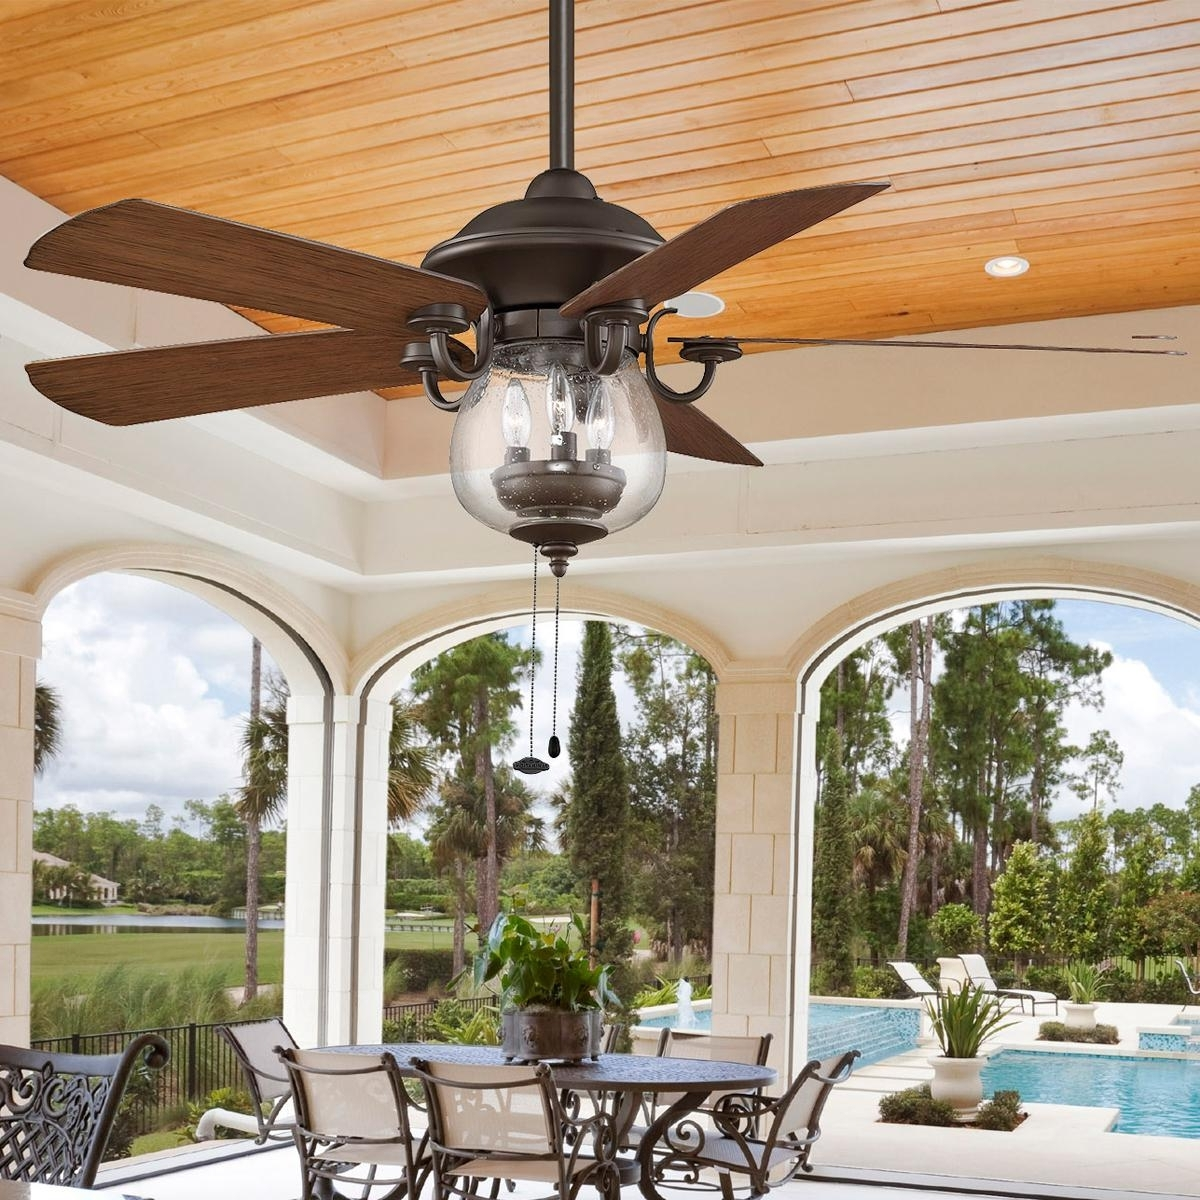 Most Current Outdoor Ceiling Fans With Lantern Light In Ceiling Fan: Recomended Exterior Ceiling Fans Ideas Outdoor Fans (Gallery 13 of 20)